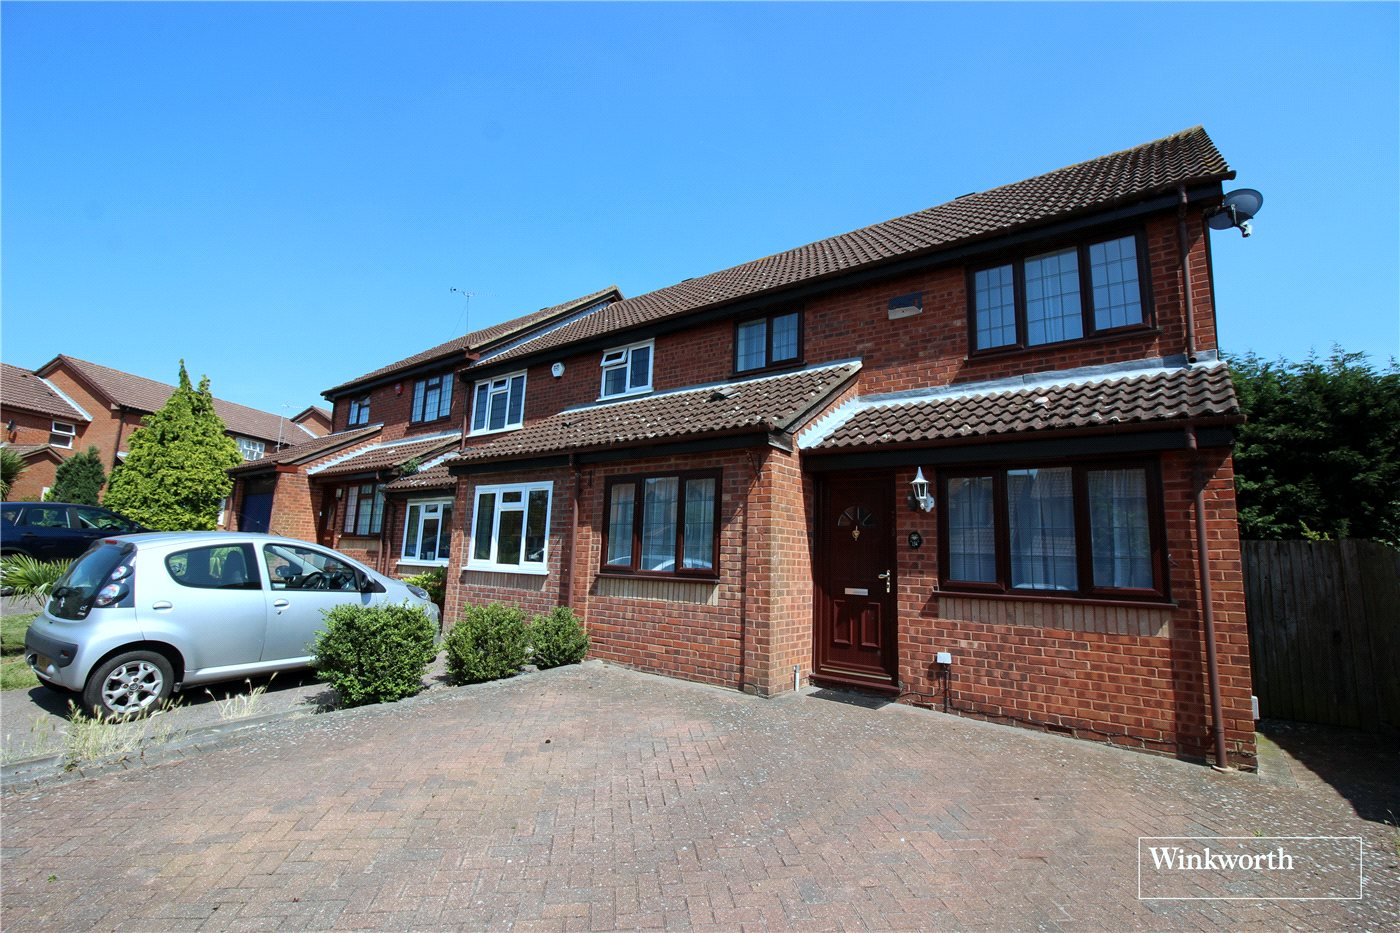 3 Bedrooms Semi Detached House for sale in The Campions, Borehamwood, Hertfordshire, WD6